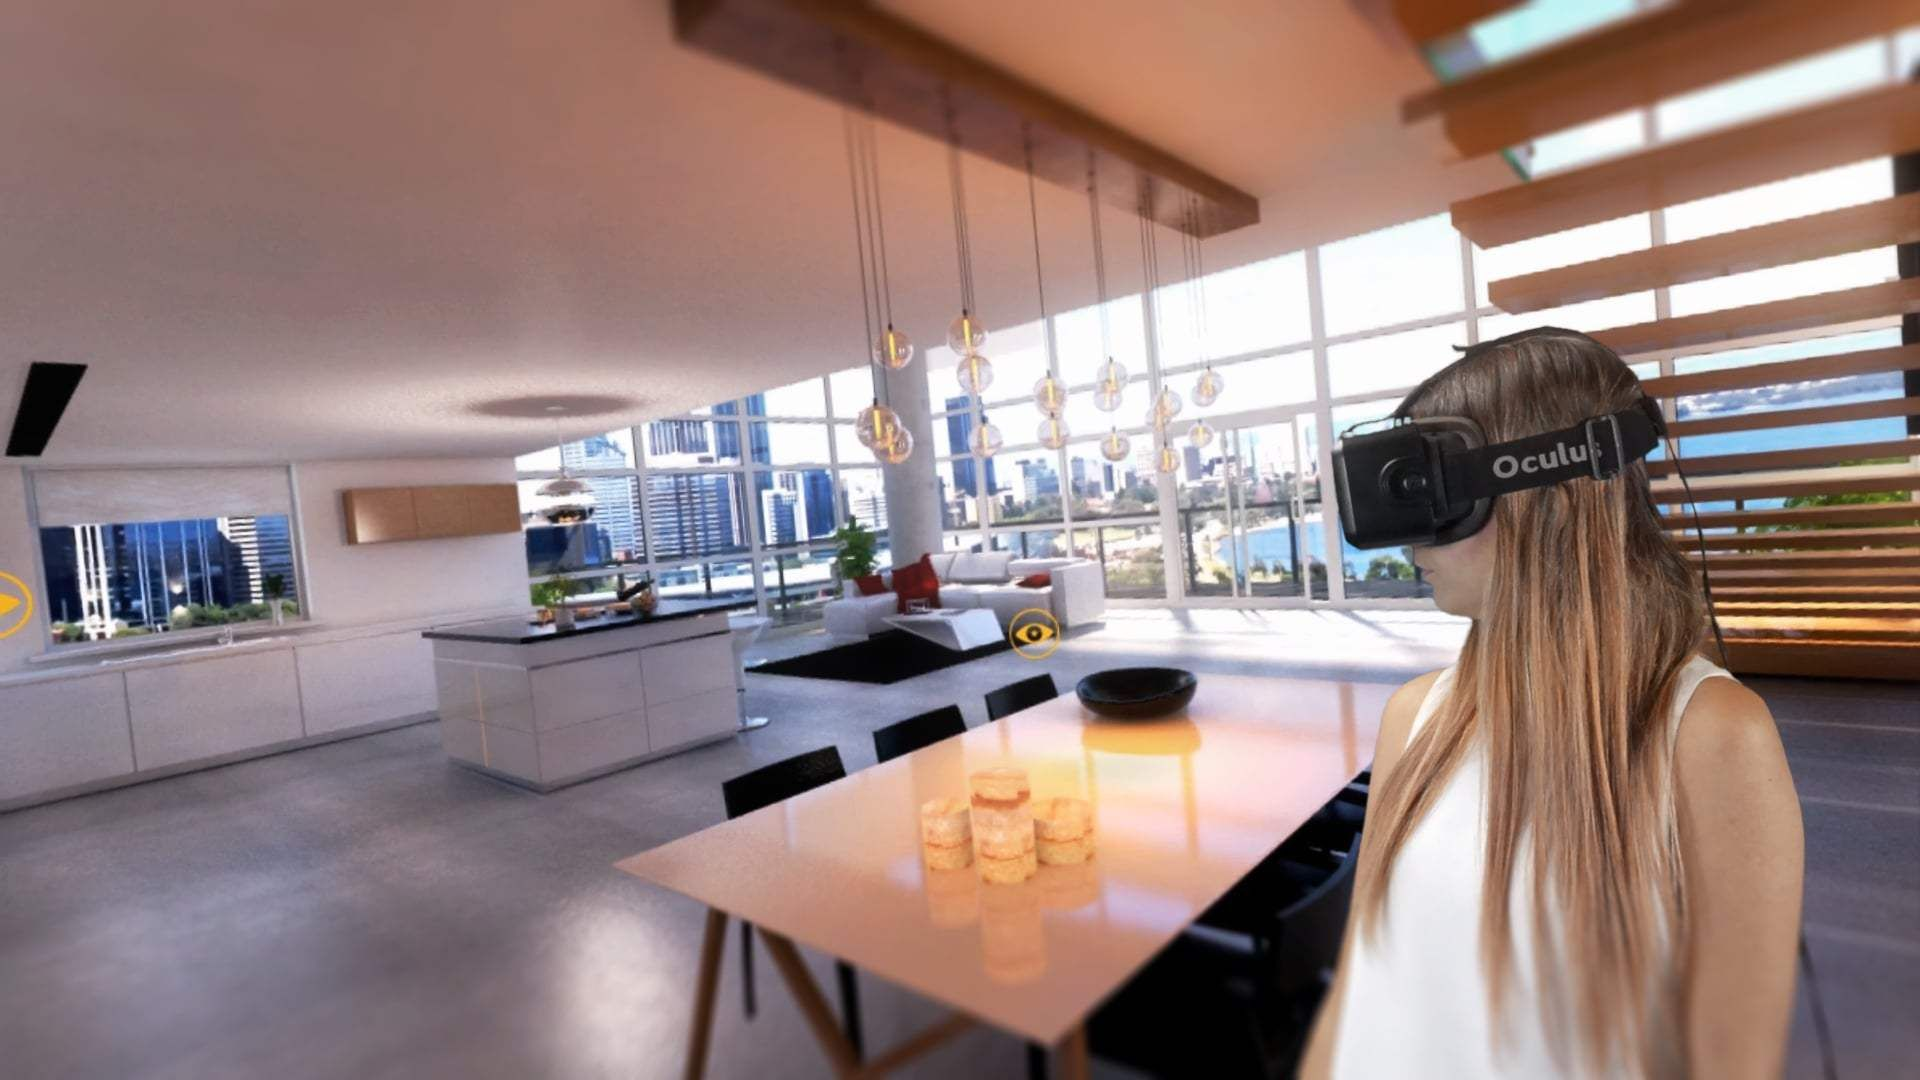 Vr Vrgames Drone Gaming Virtual Reality For Real Estate Marketing Sales Ar Architectural Digest Virtual Reality Glasses Virtual Reality Virtual Staging